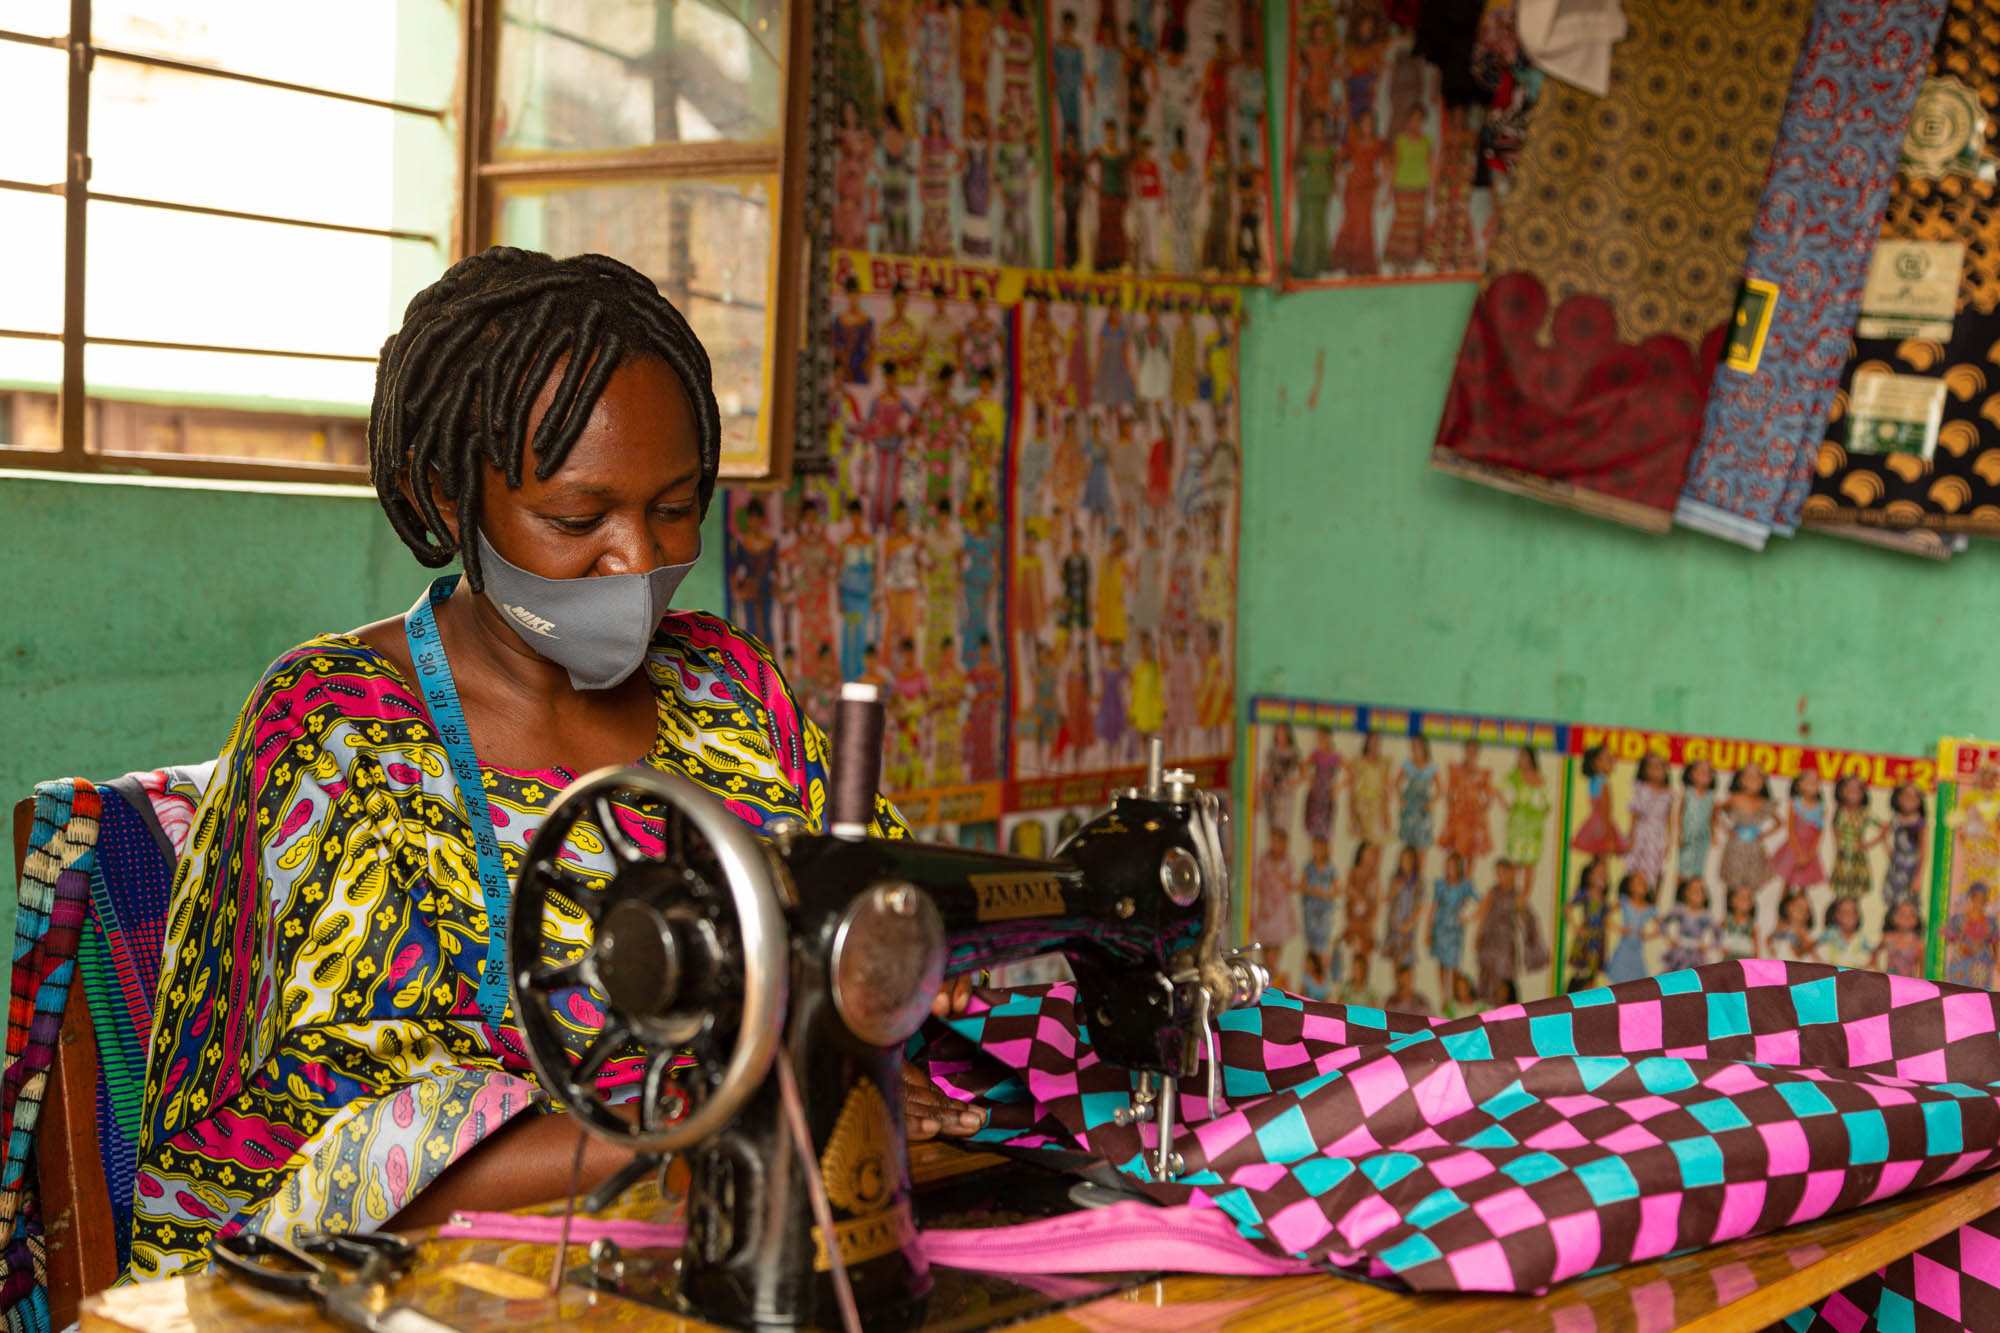 An environmental portrait of a tailor making a bag on her sewing machine. This image was captured in Nyamirambo, Kigali.